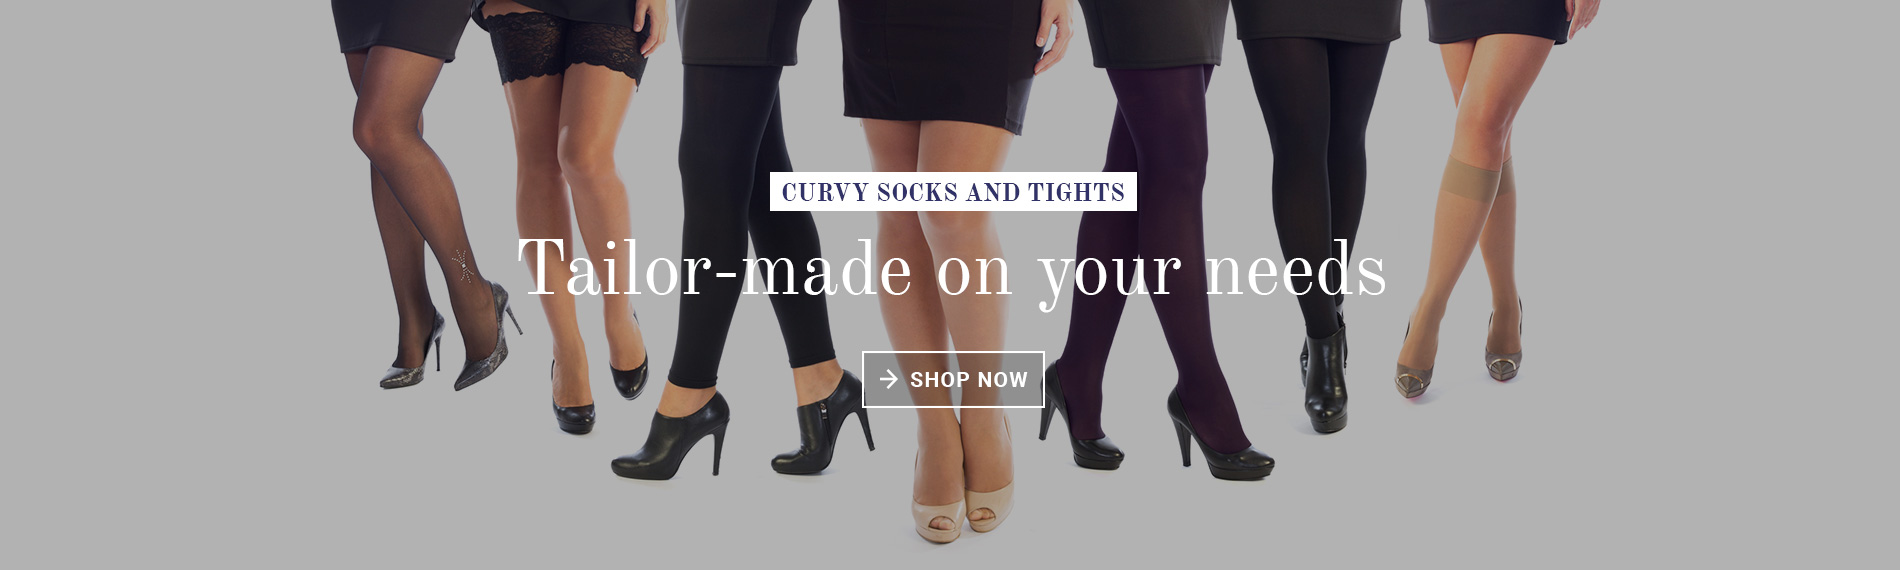 TIGHTS Tailor-made on your needs